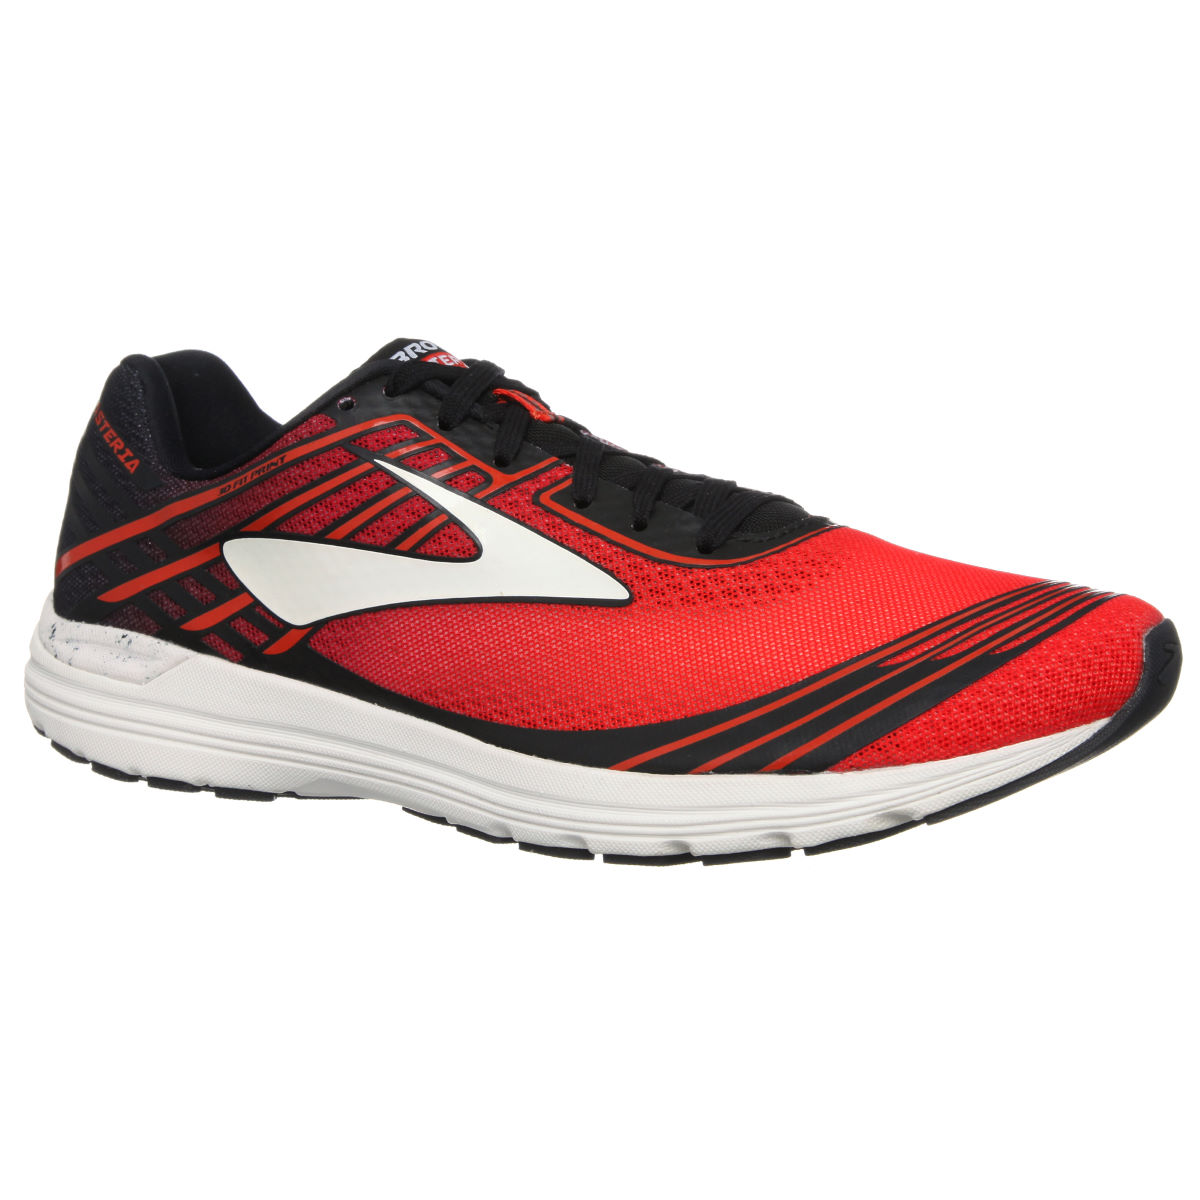 Chaussures Brooks Asteria - UK 8 Rouge/Noir